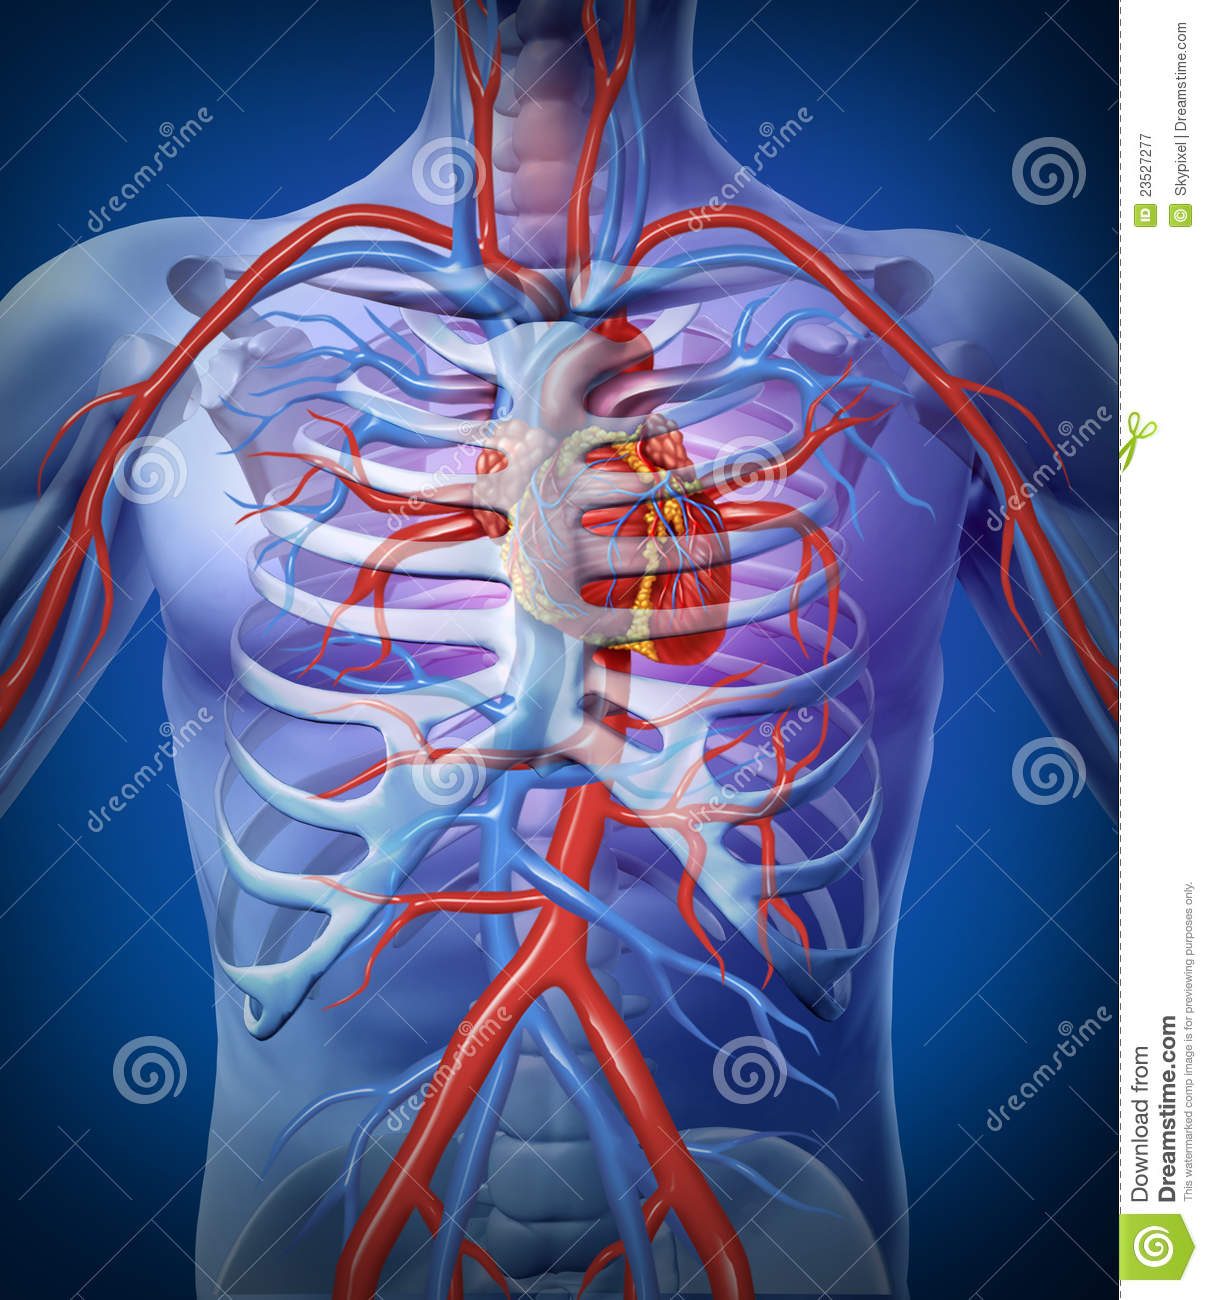 hight resolution of human heart circulation in a skeleton cardiovascular system with heart anatomy from a healthy body on a black glowing background as a medical health care